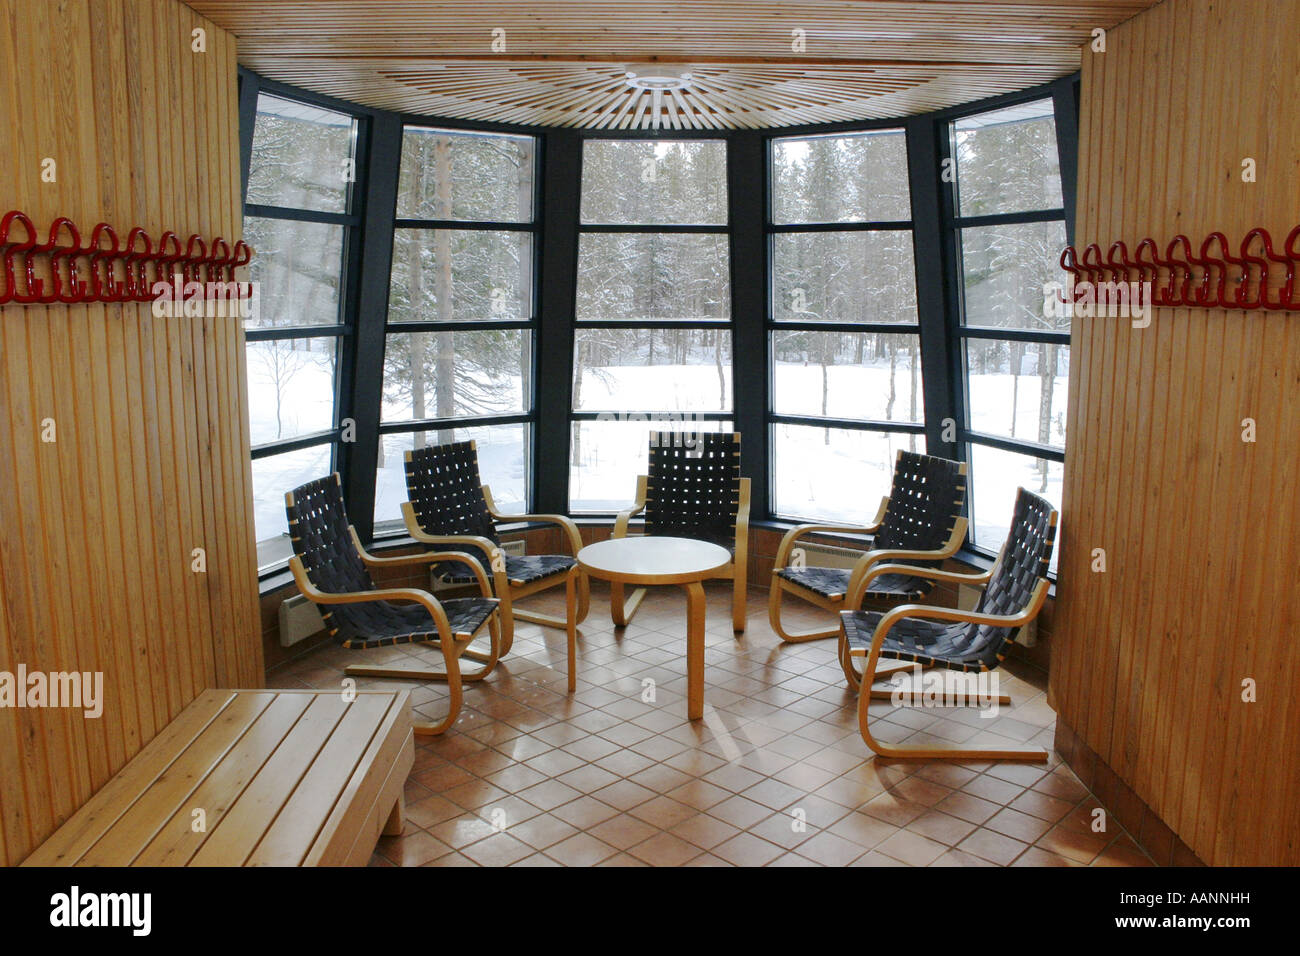 finland sauna snow stockfotos finland sauna snow bilder alamy. Black Bedroom Furniture Sets. Home Design Ideas